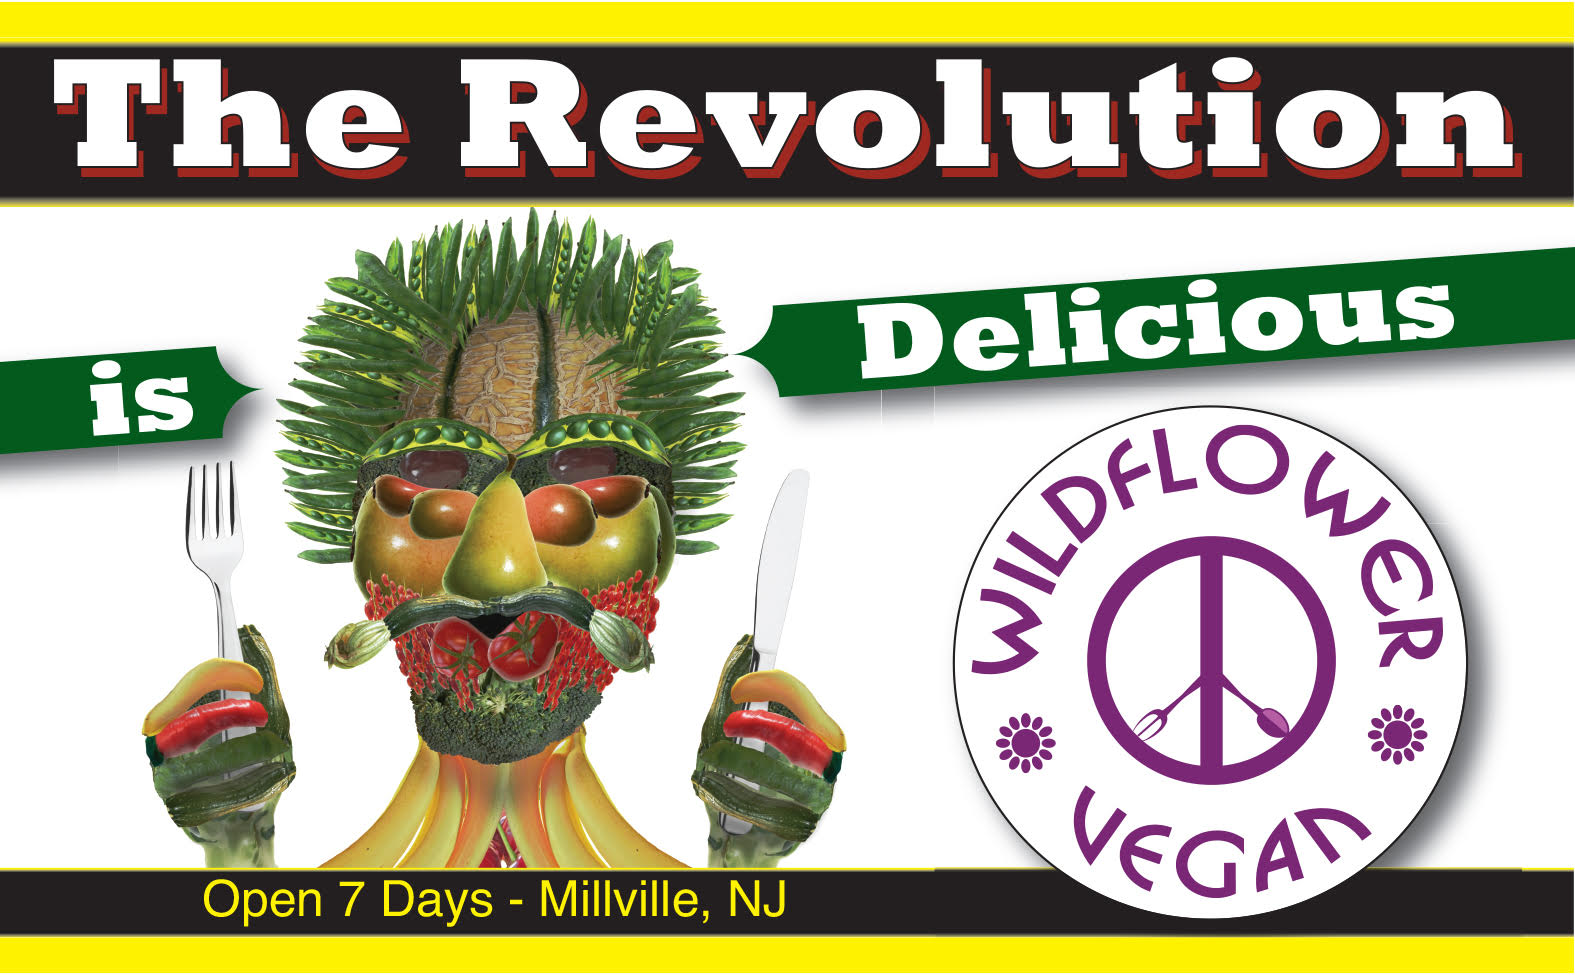 The Revolution is Delicious Bumper Sticker